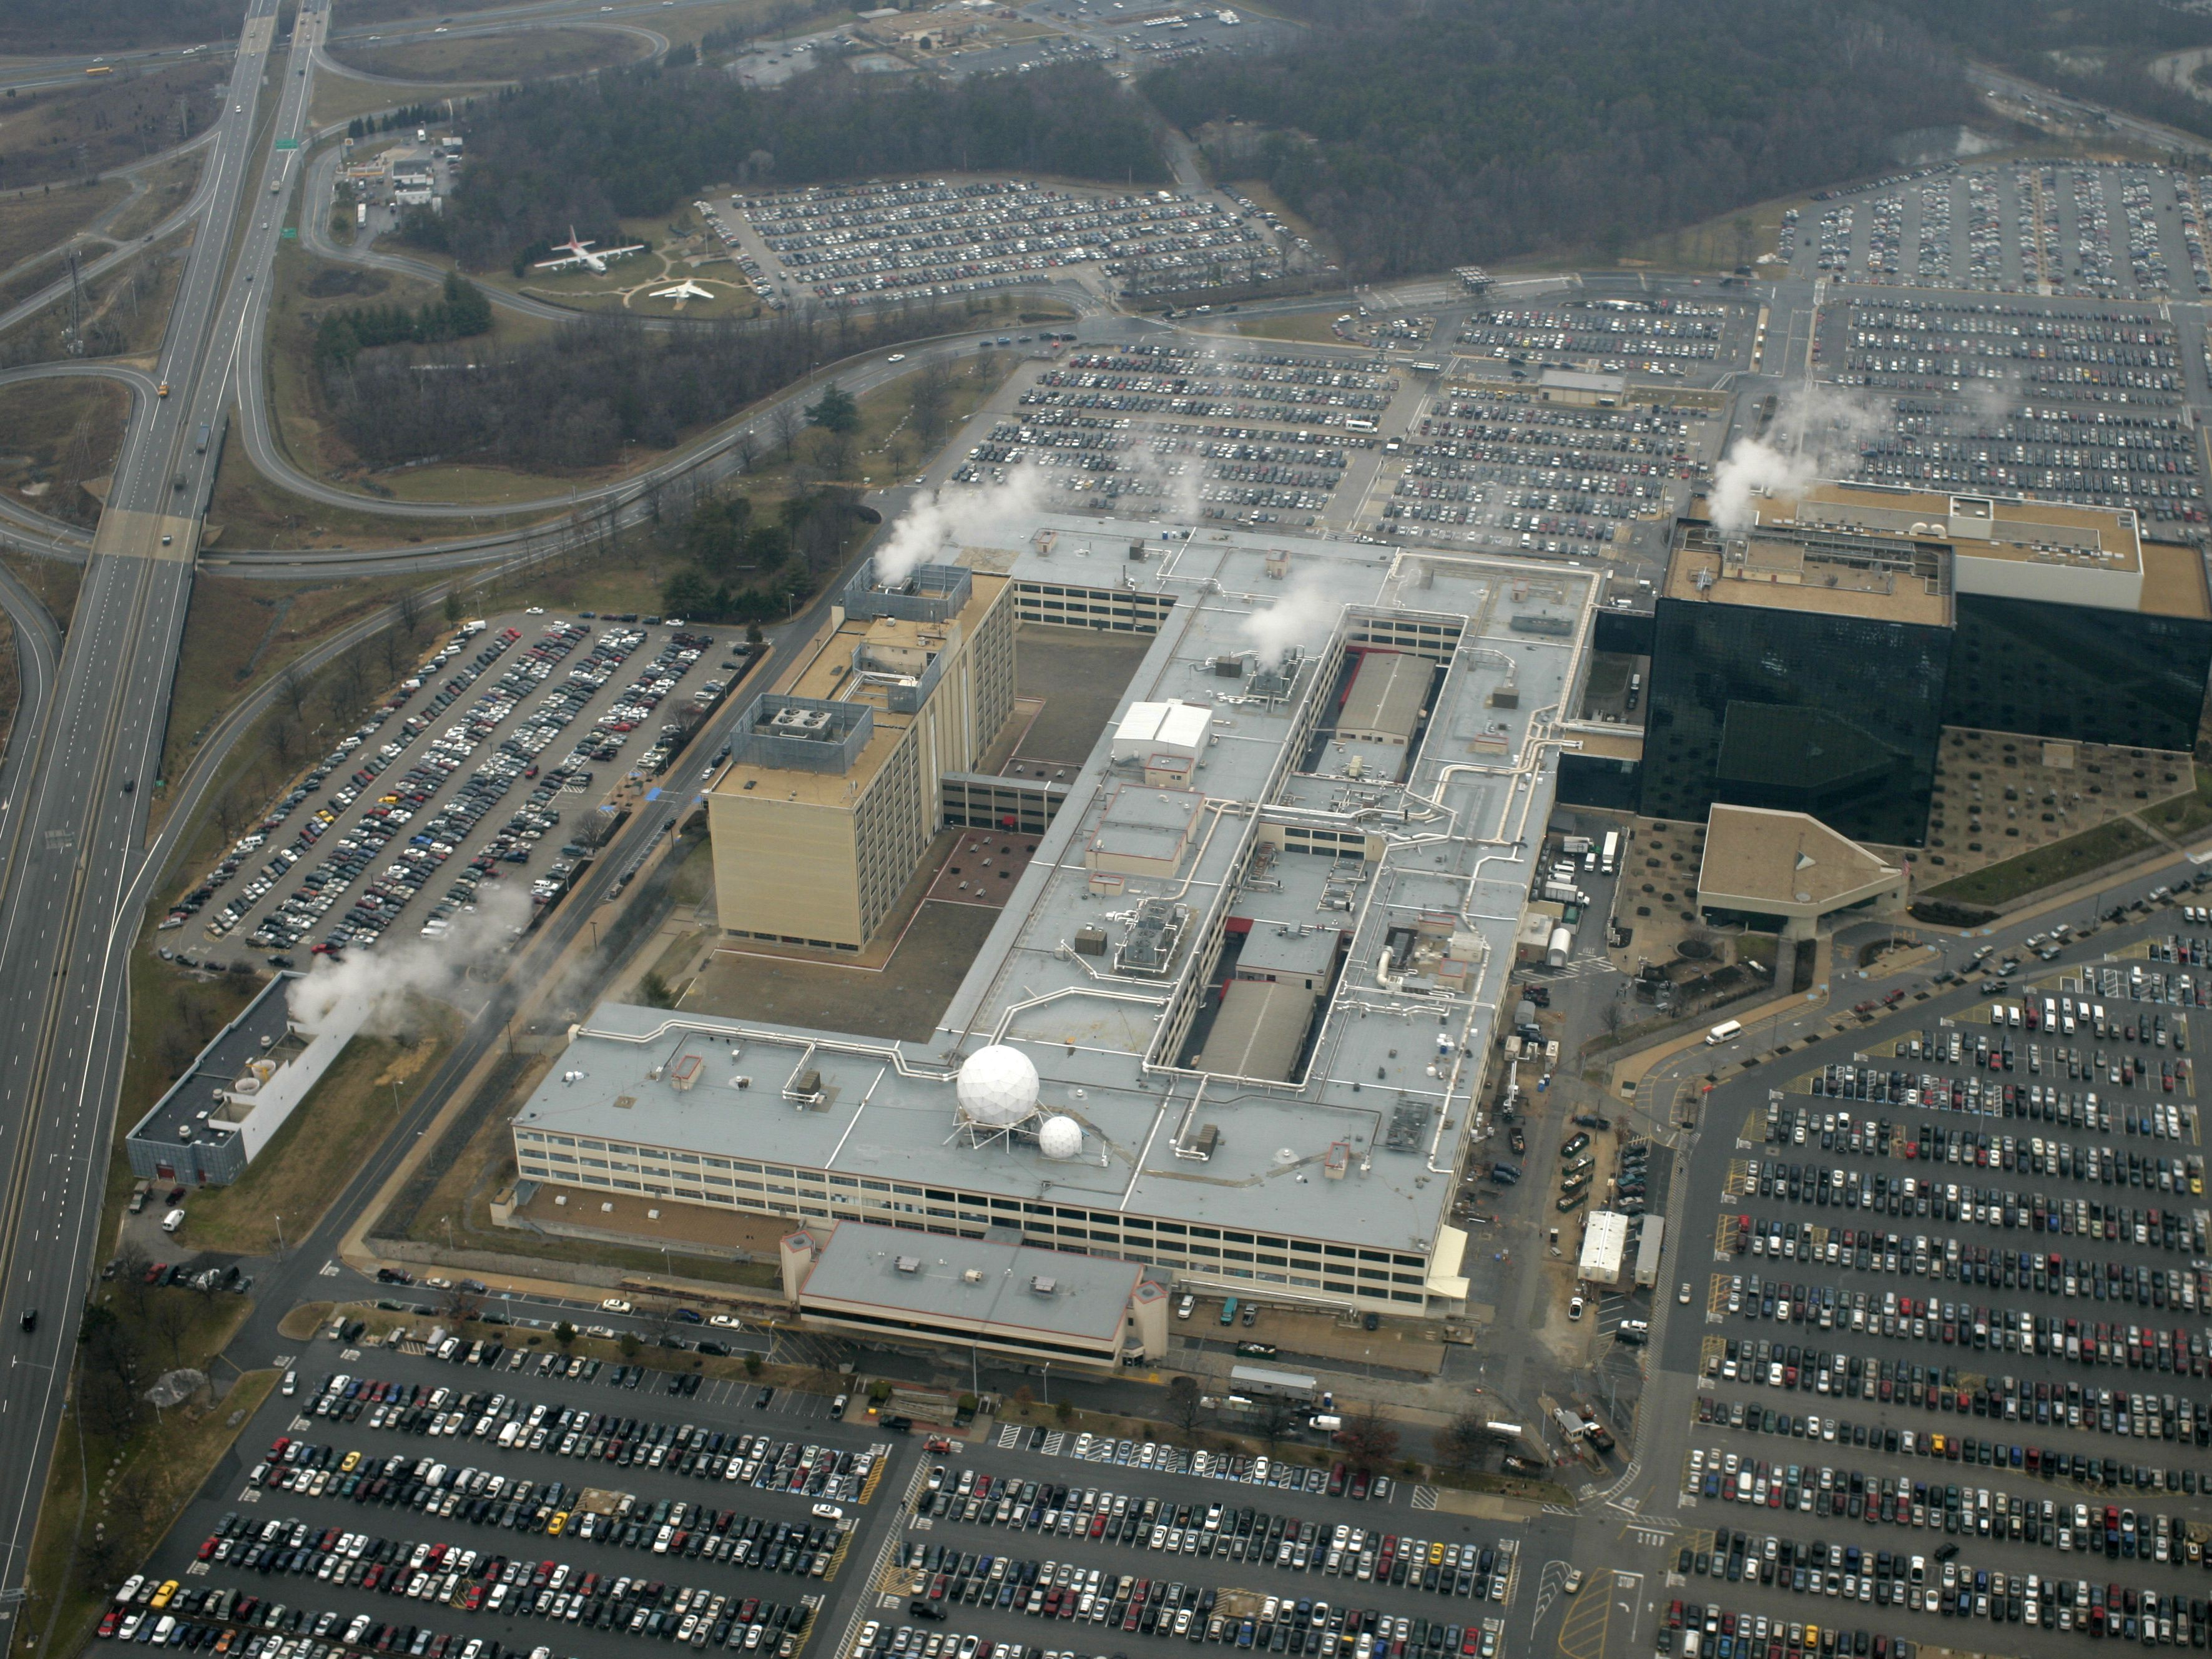 Military Bases in Washington DC, Maryland, and Virginia